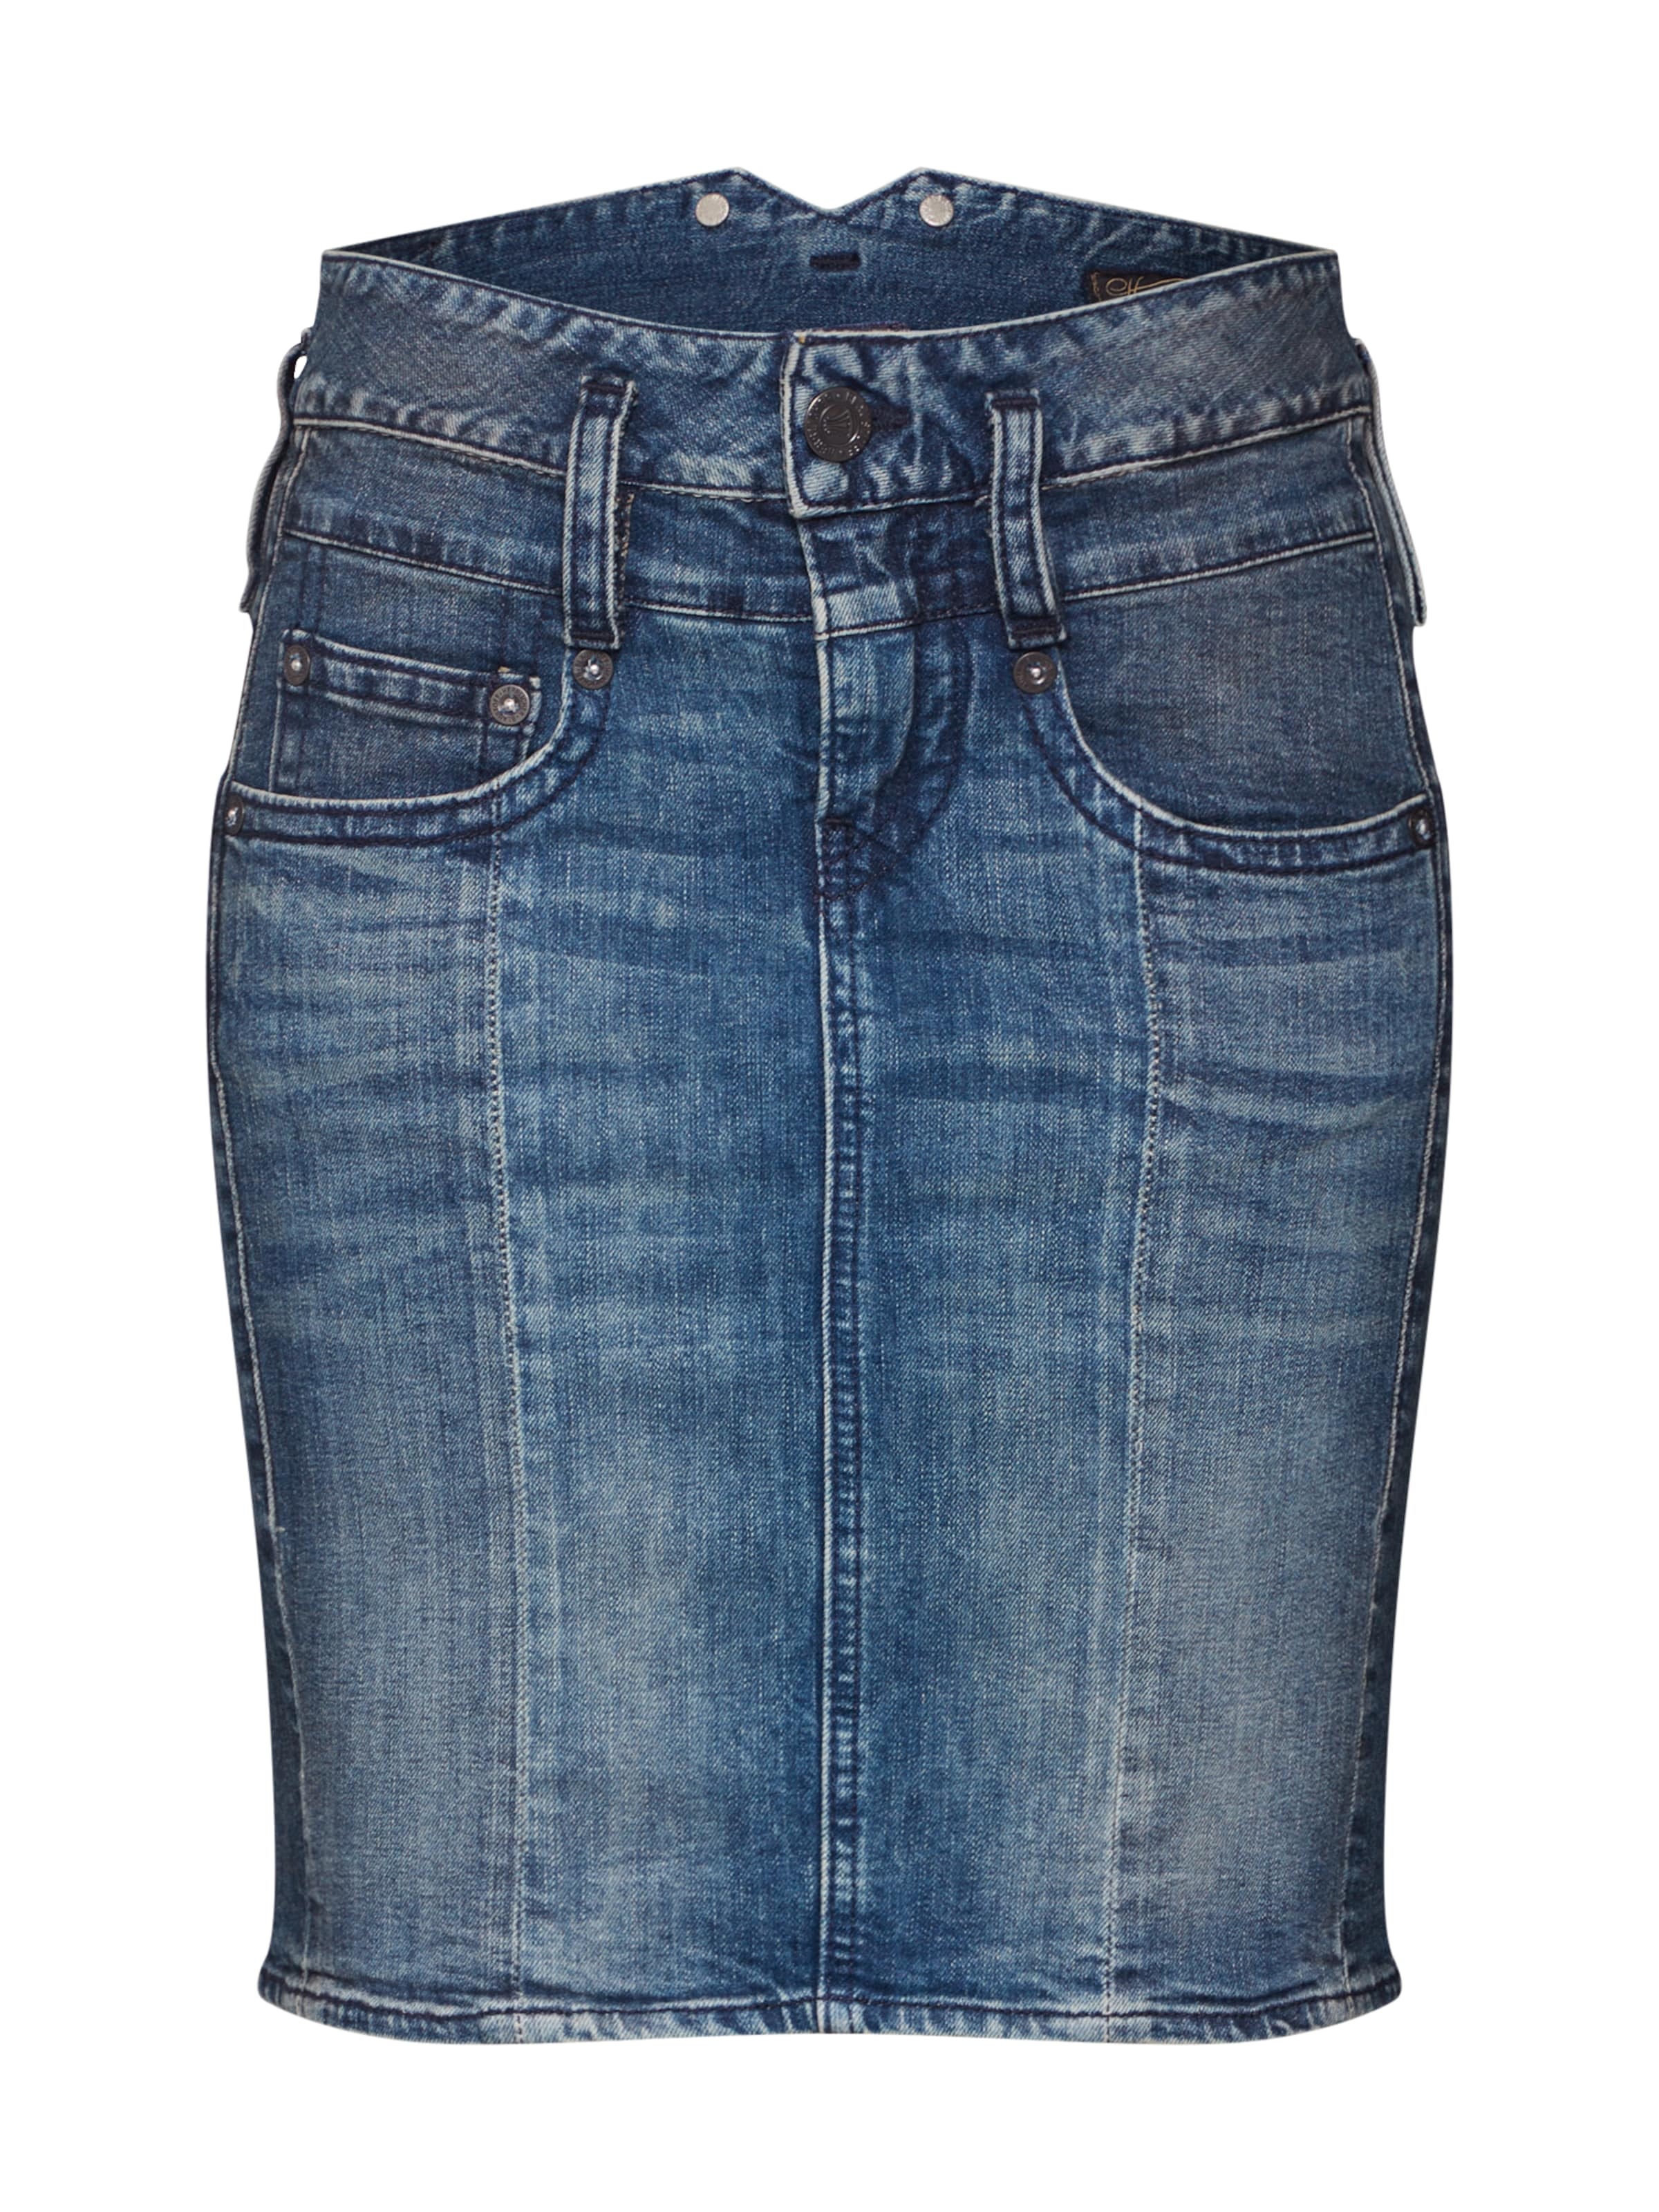 Herrlicher Blue In Rock 'patsy' Denim LUVqSzMpG